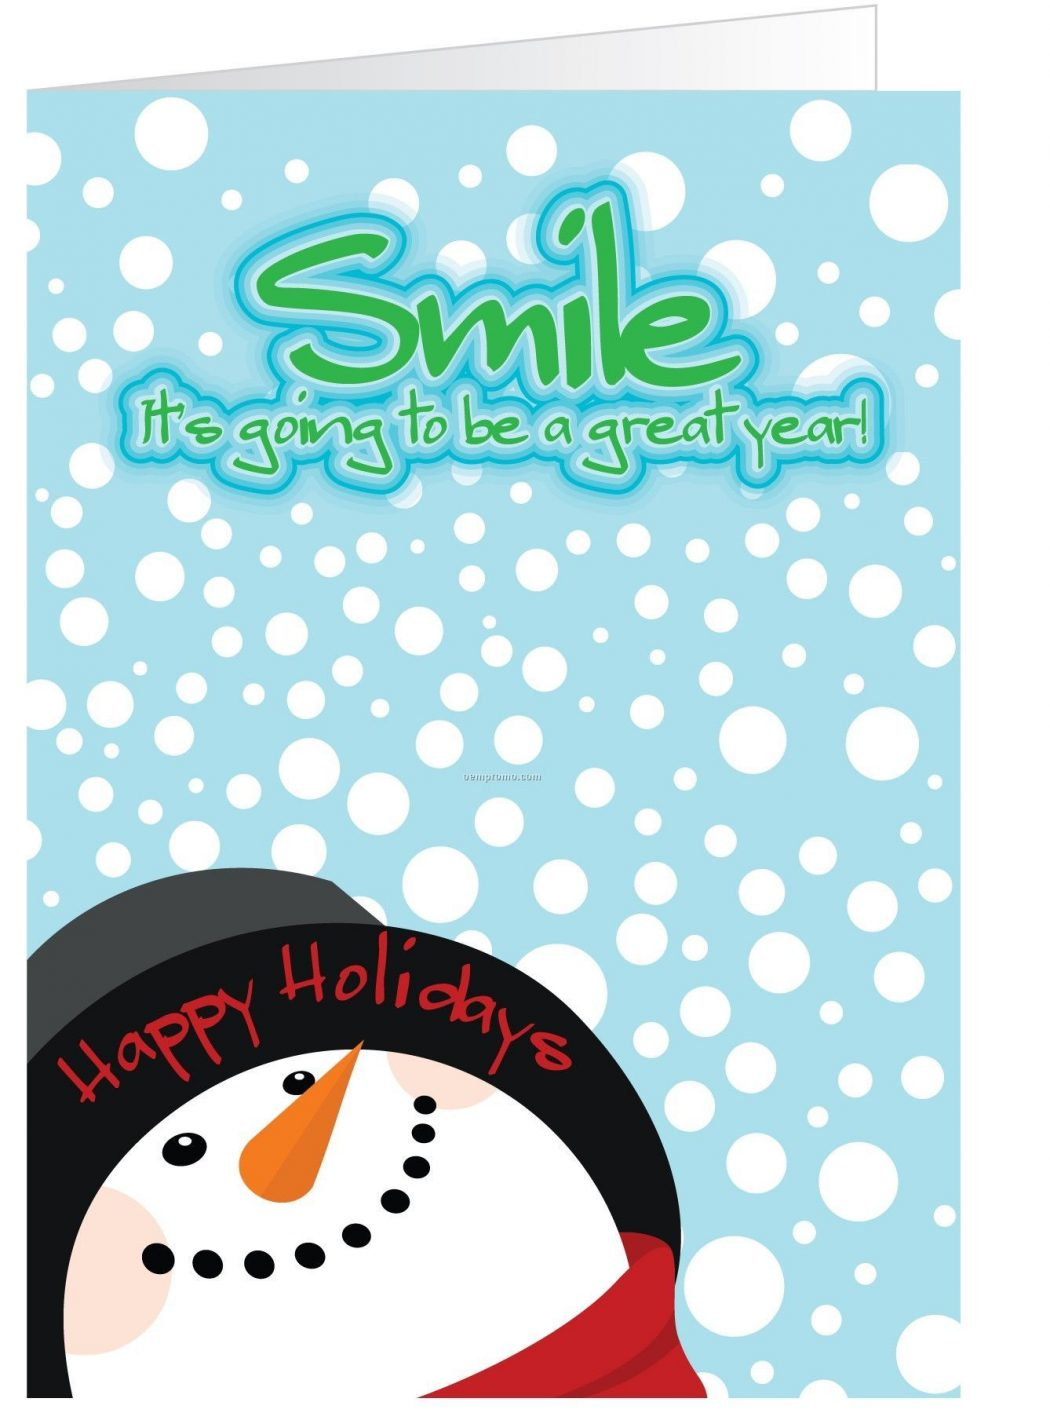 Snowman-Smile-Holiday-Greeting Wonderful greeting cards for happy holidays